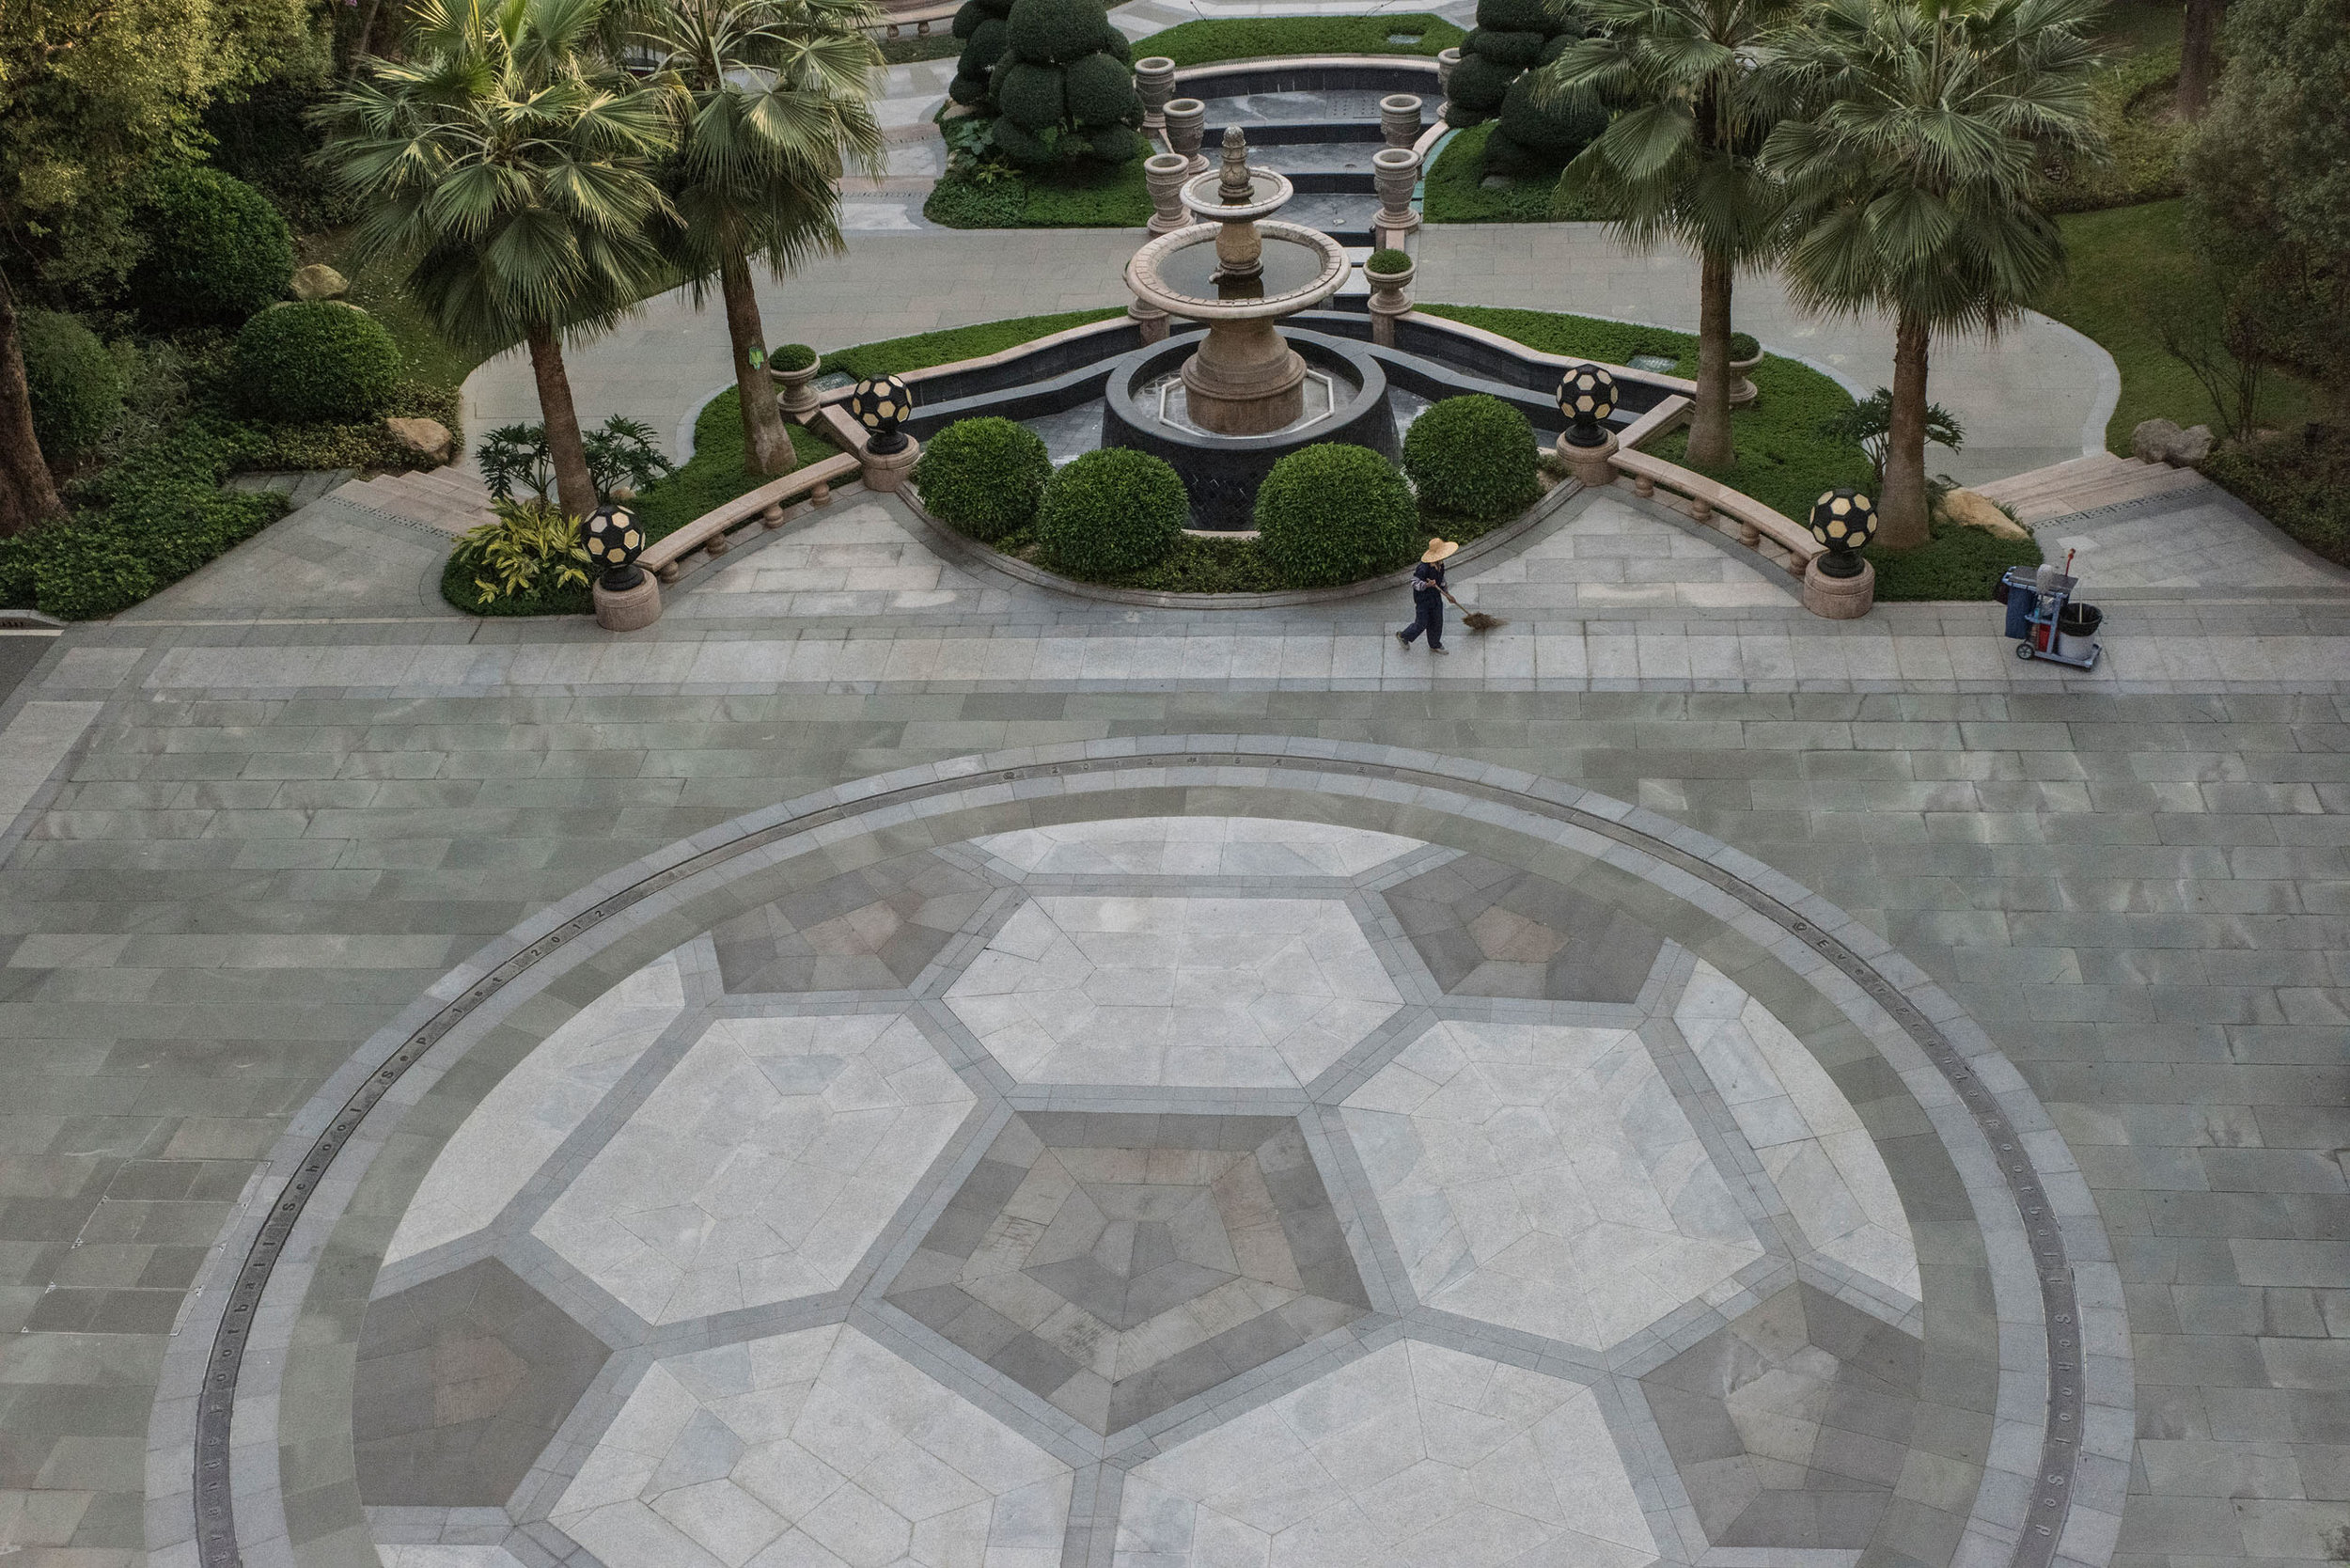 An employee sweeping the alleys of the Evergrande Football School manicured gardens where a mosaic represents a giant soccer ball.